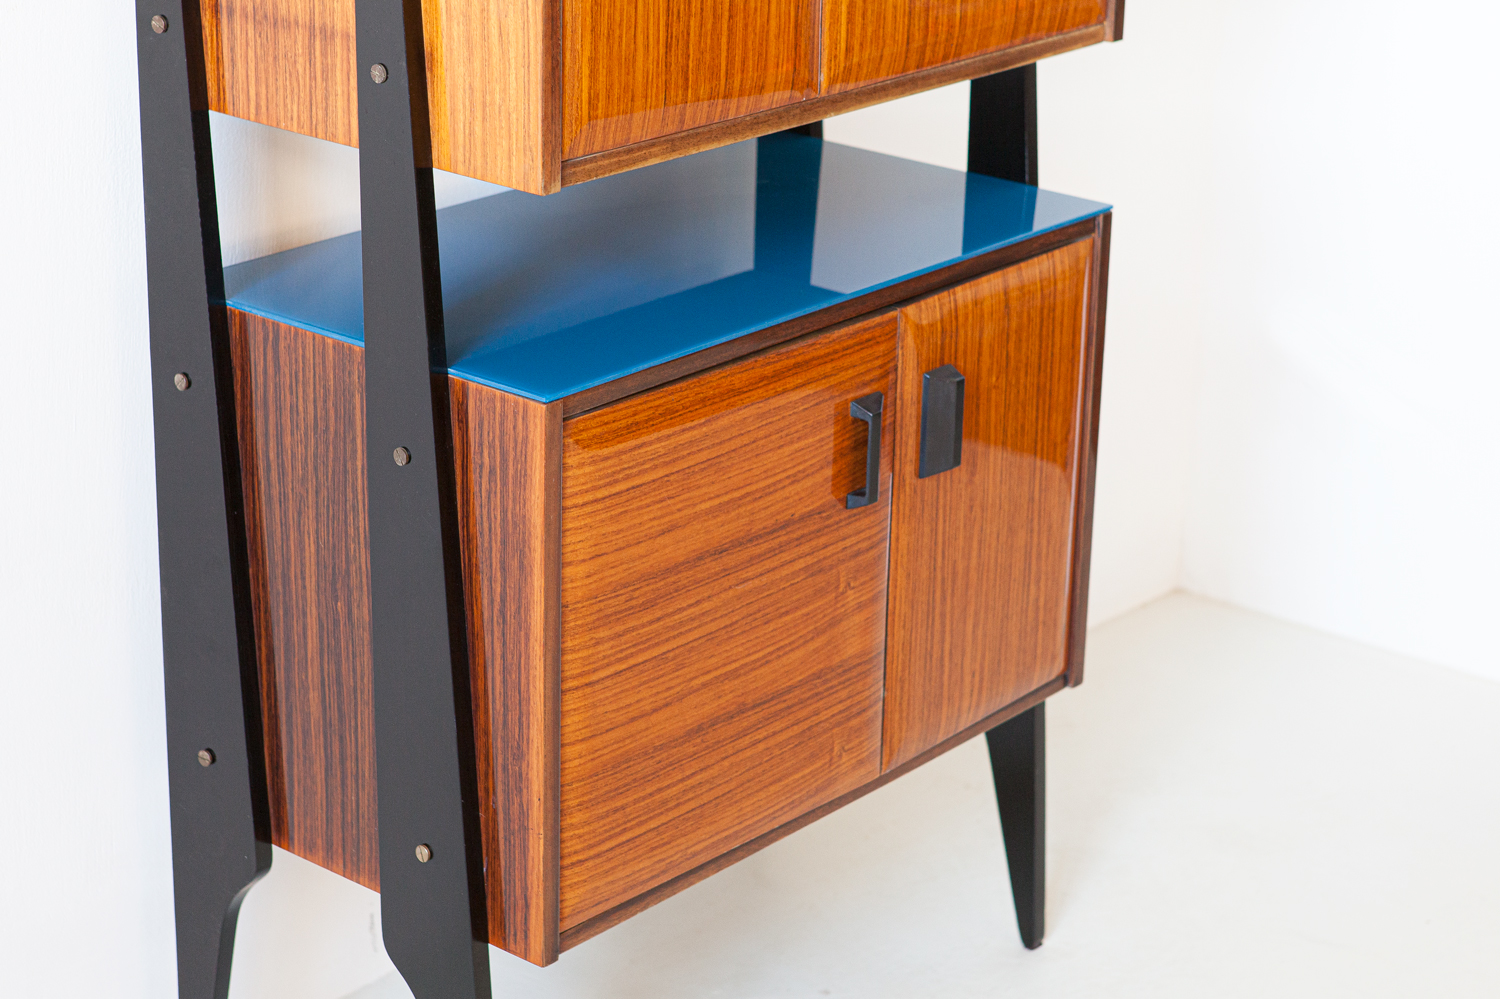 1950s-italian-rosewood-blue-glass-and-brass-credenza-4-st118